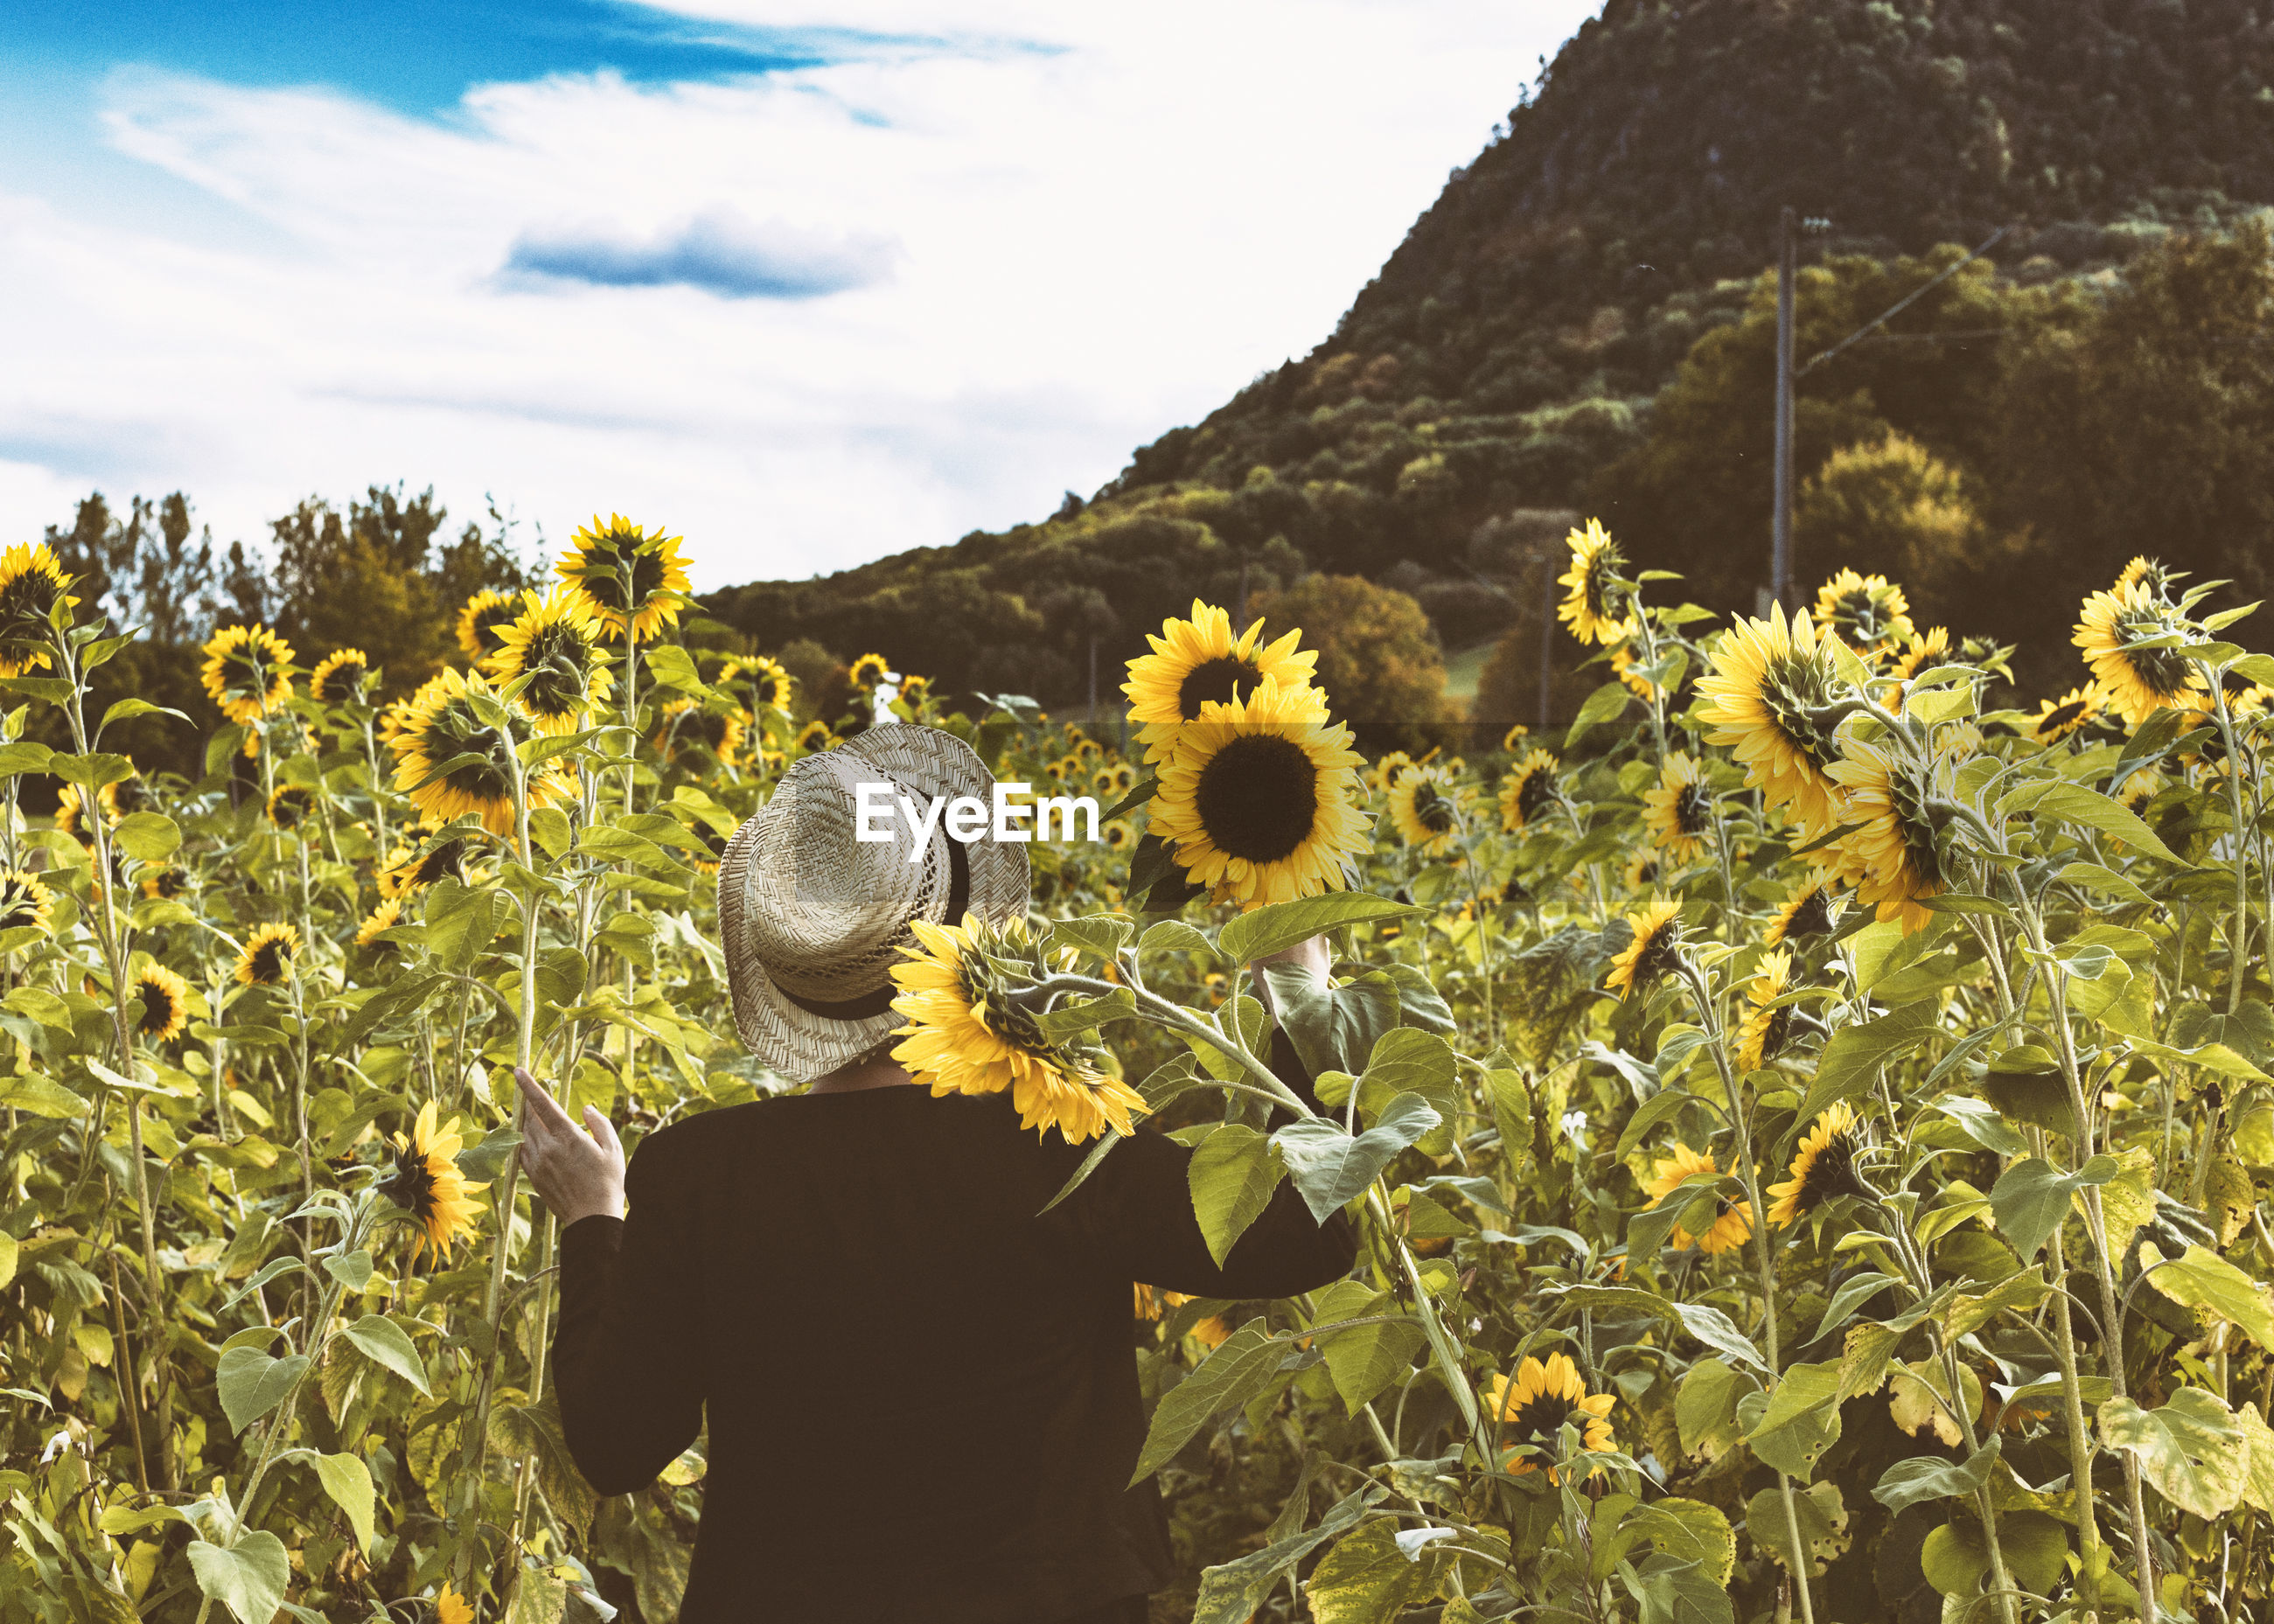 REAR VIEW OF WOMAN STANDING BY SUNFLOWER FIELD